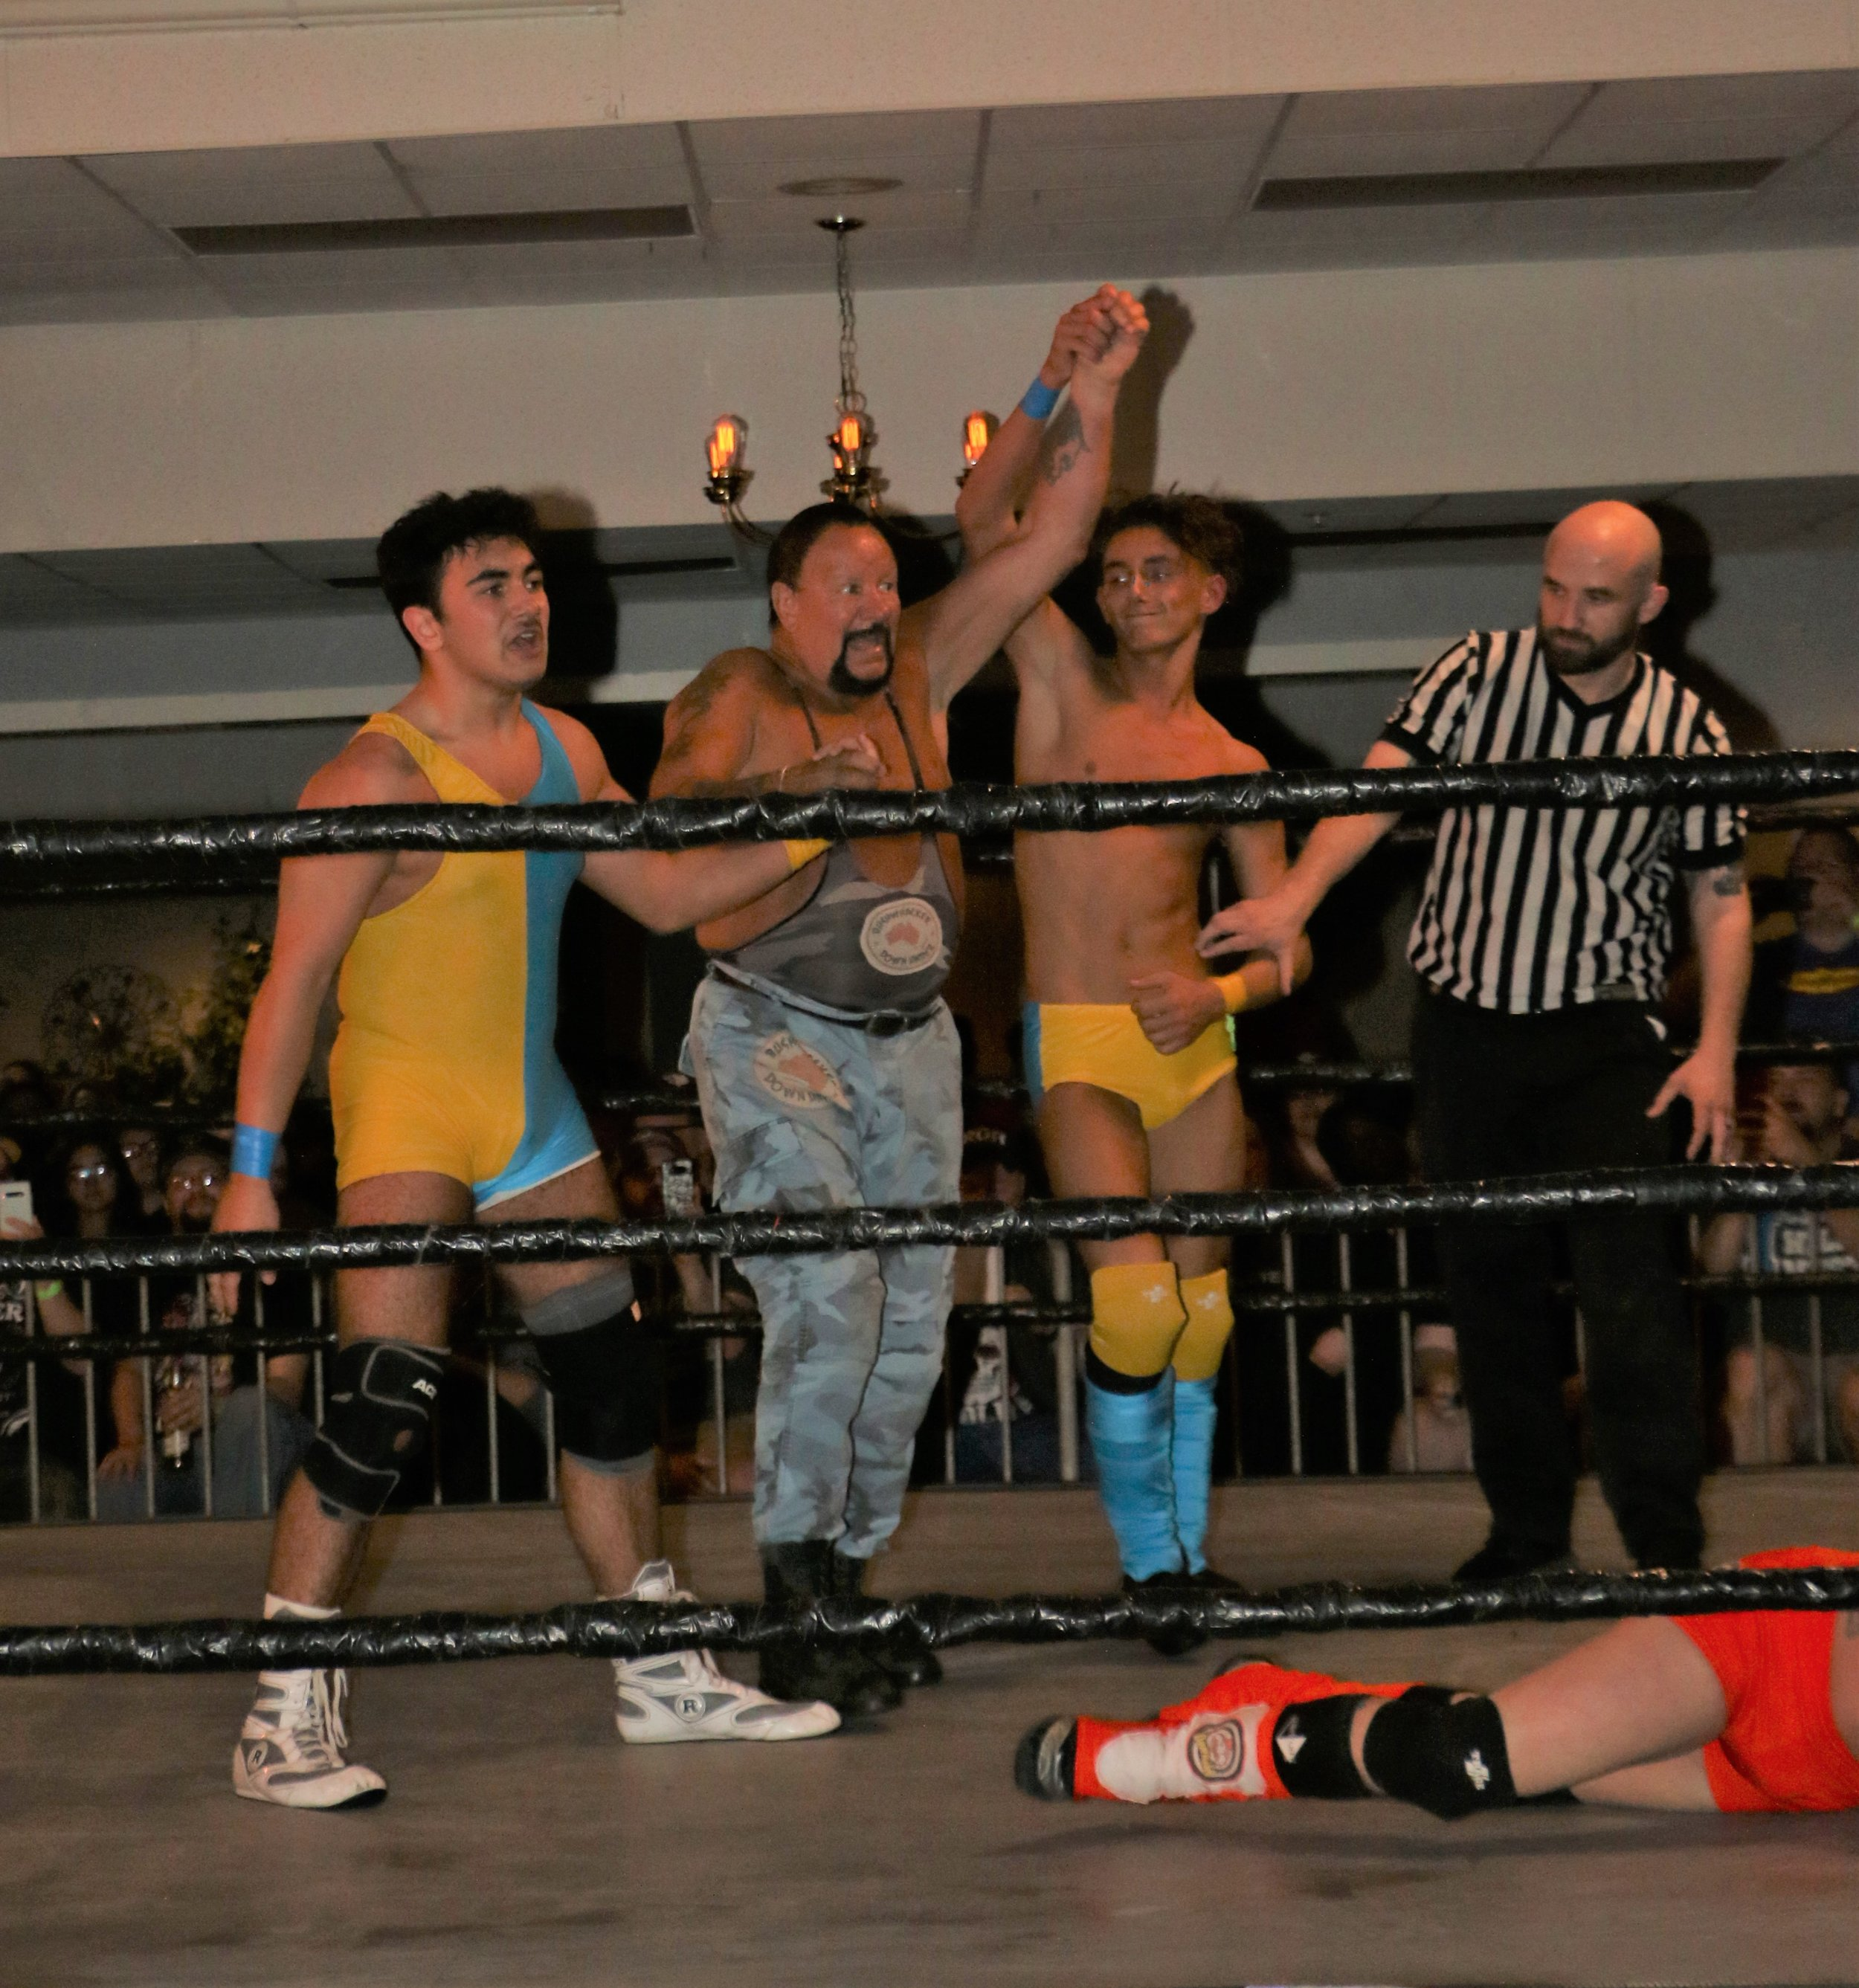 Your winners: Bushwhacker Luke and the Princes of the Universe!